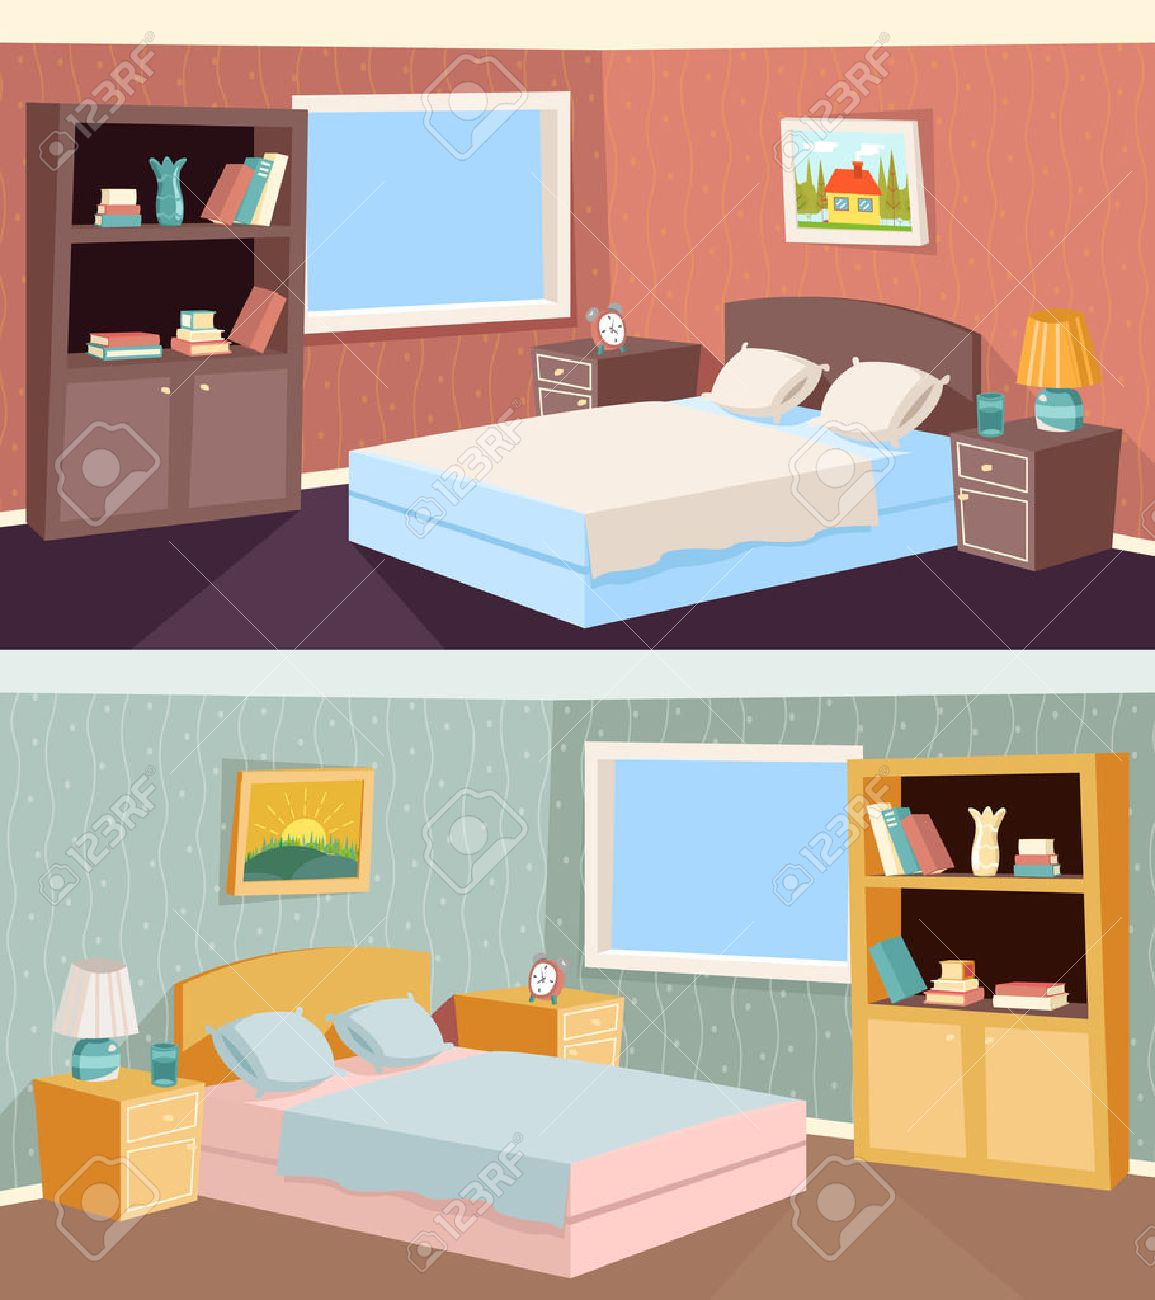 Cartoon Bedroom Apartment Livingroom Interior House Room Retro Vintage Background Vector Illustration Stock Vector 40269889